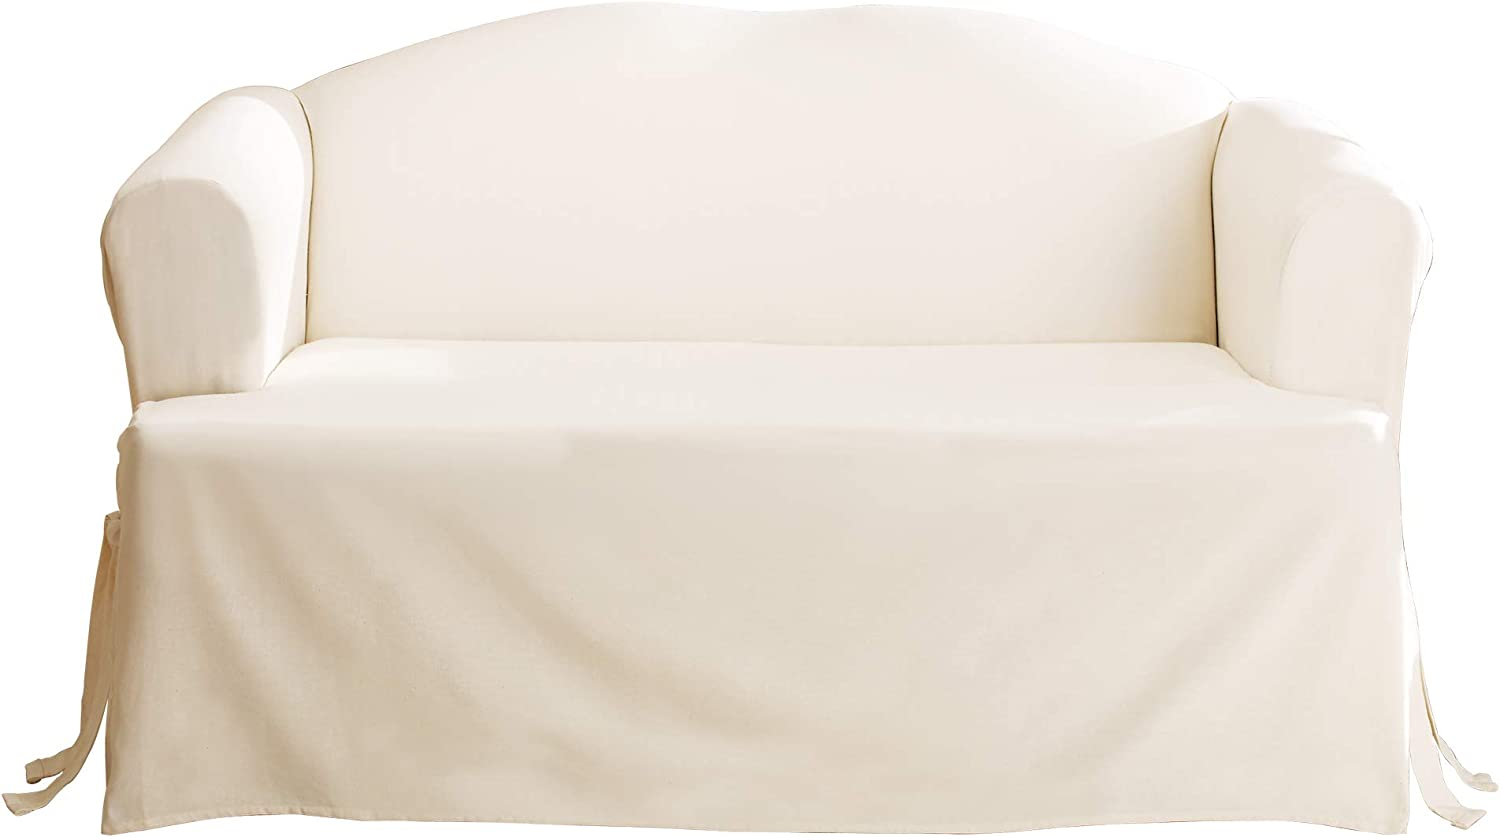 Surefit Home Décor Duck Solid T-Cushion Sofa One Piece Slipcover, Relaxed Fit, 100% Cotton, Machine Washable, Natural Color